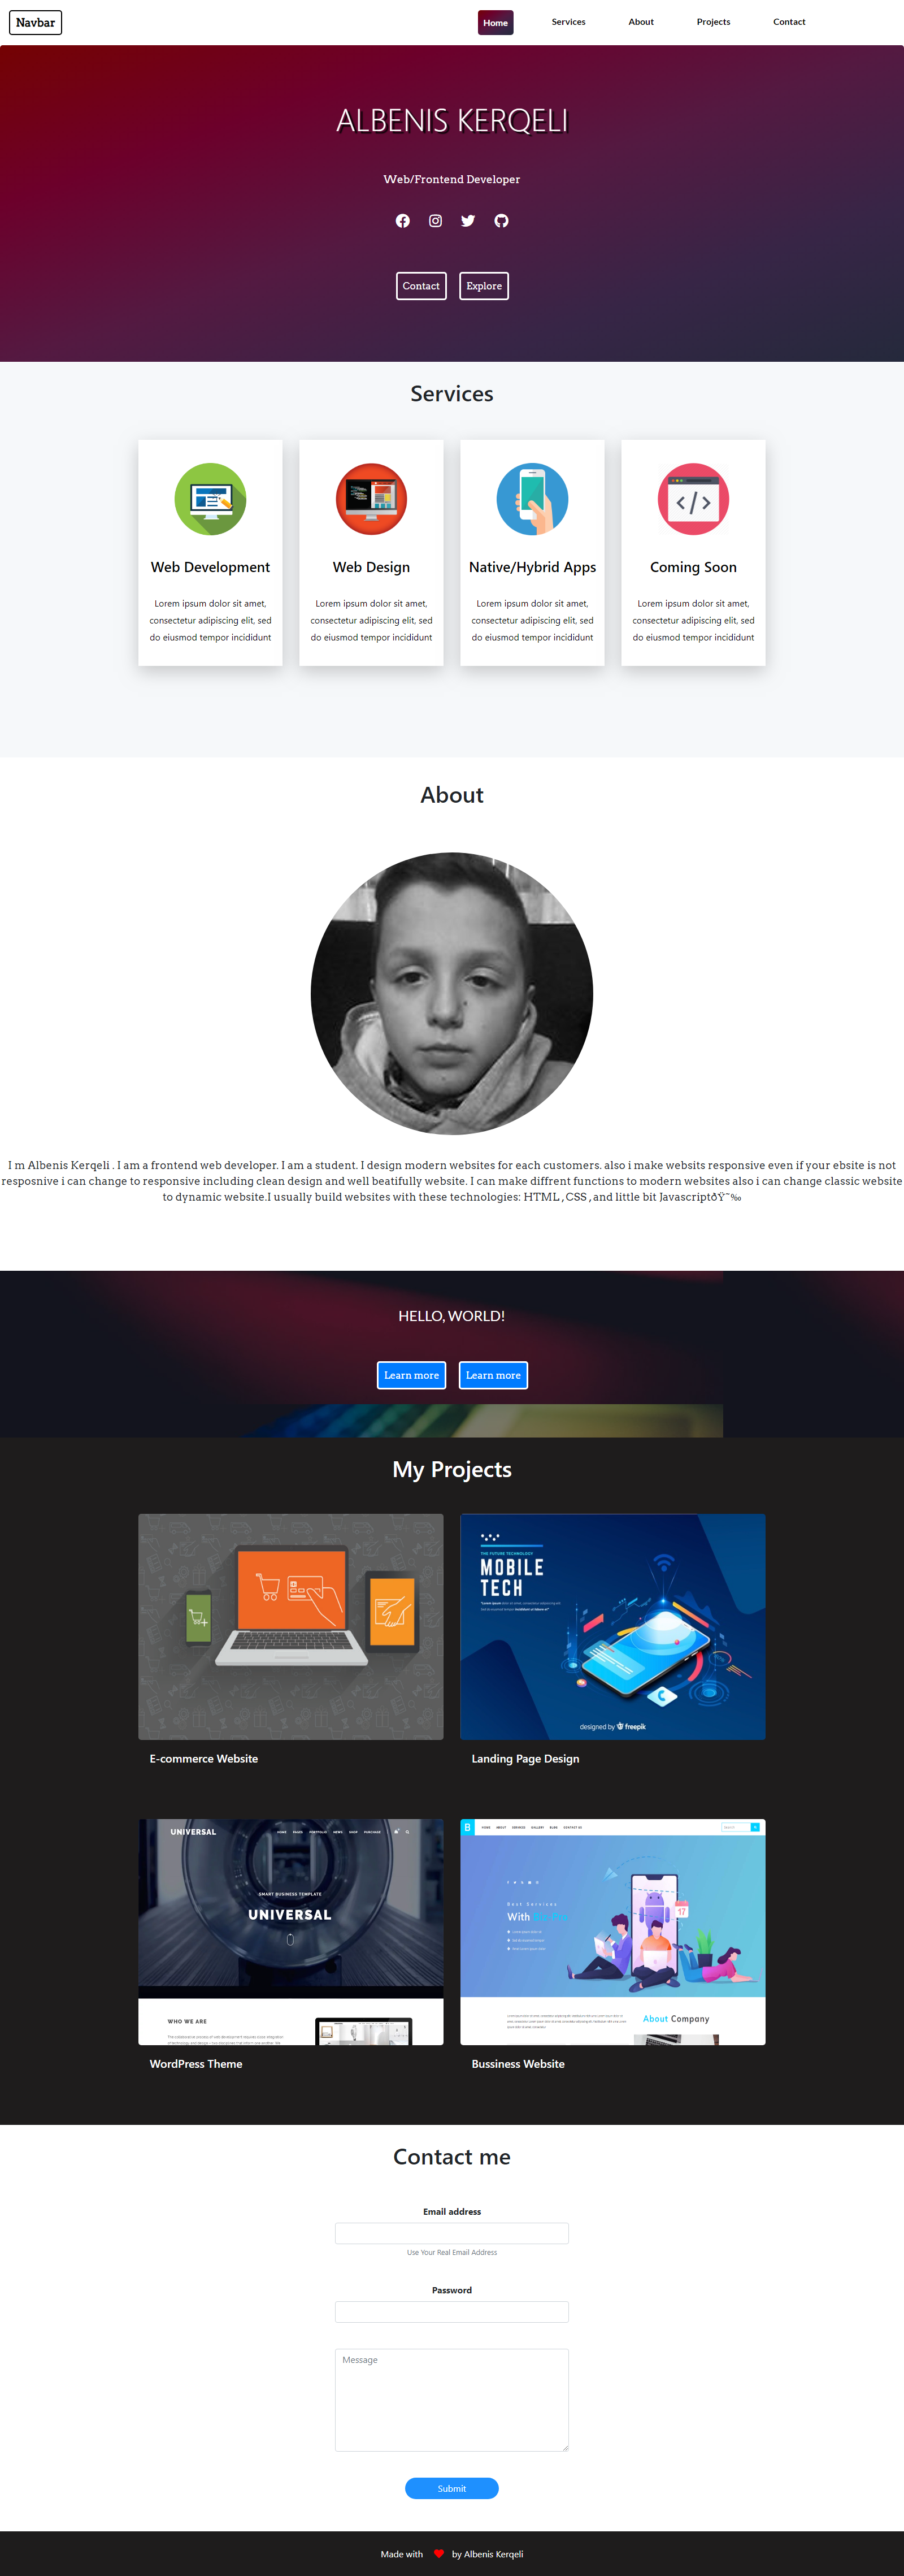 I will create fully responsive HTML/CSS website for a low price